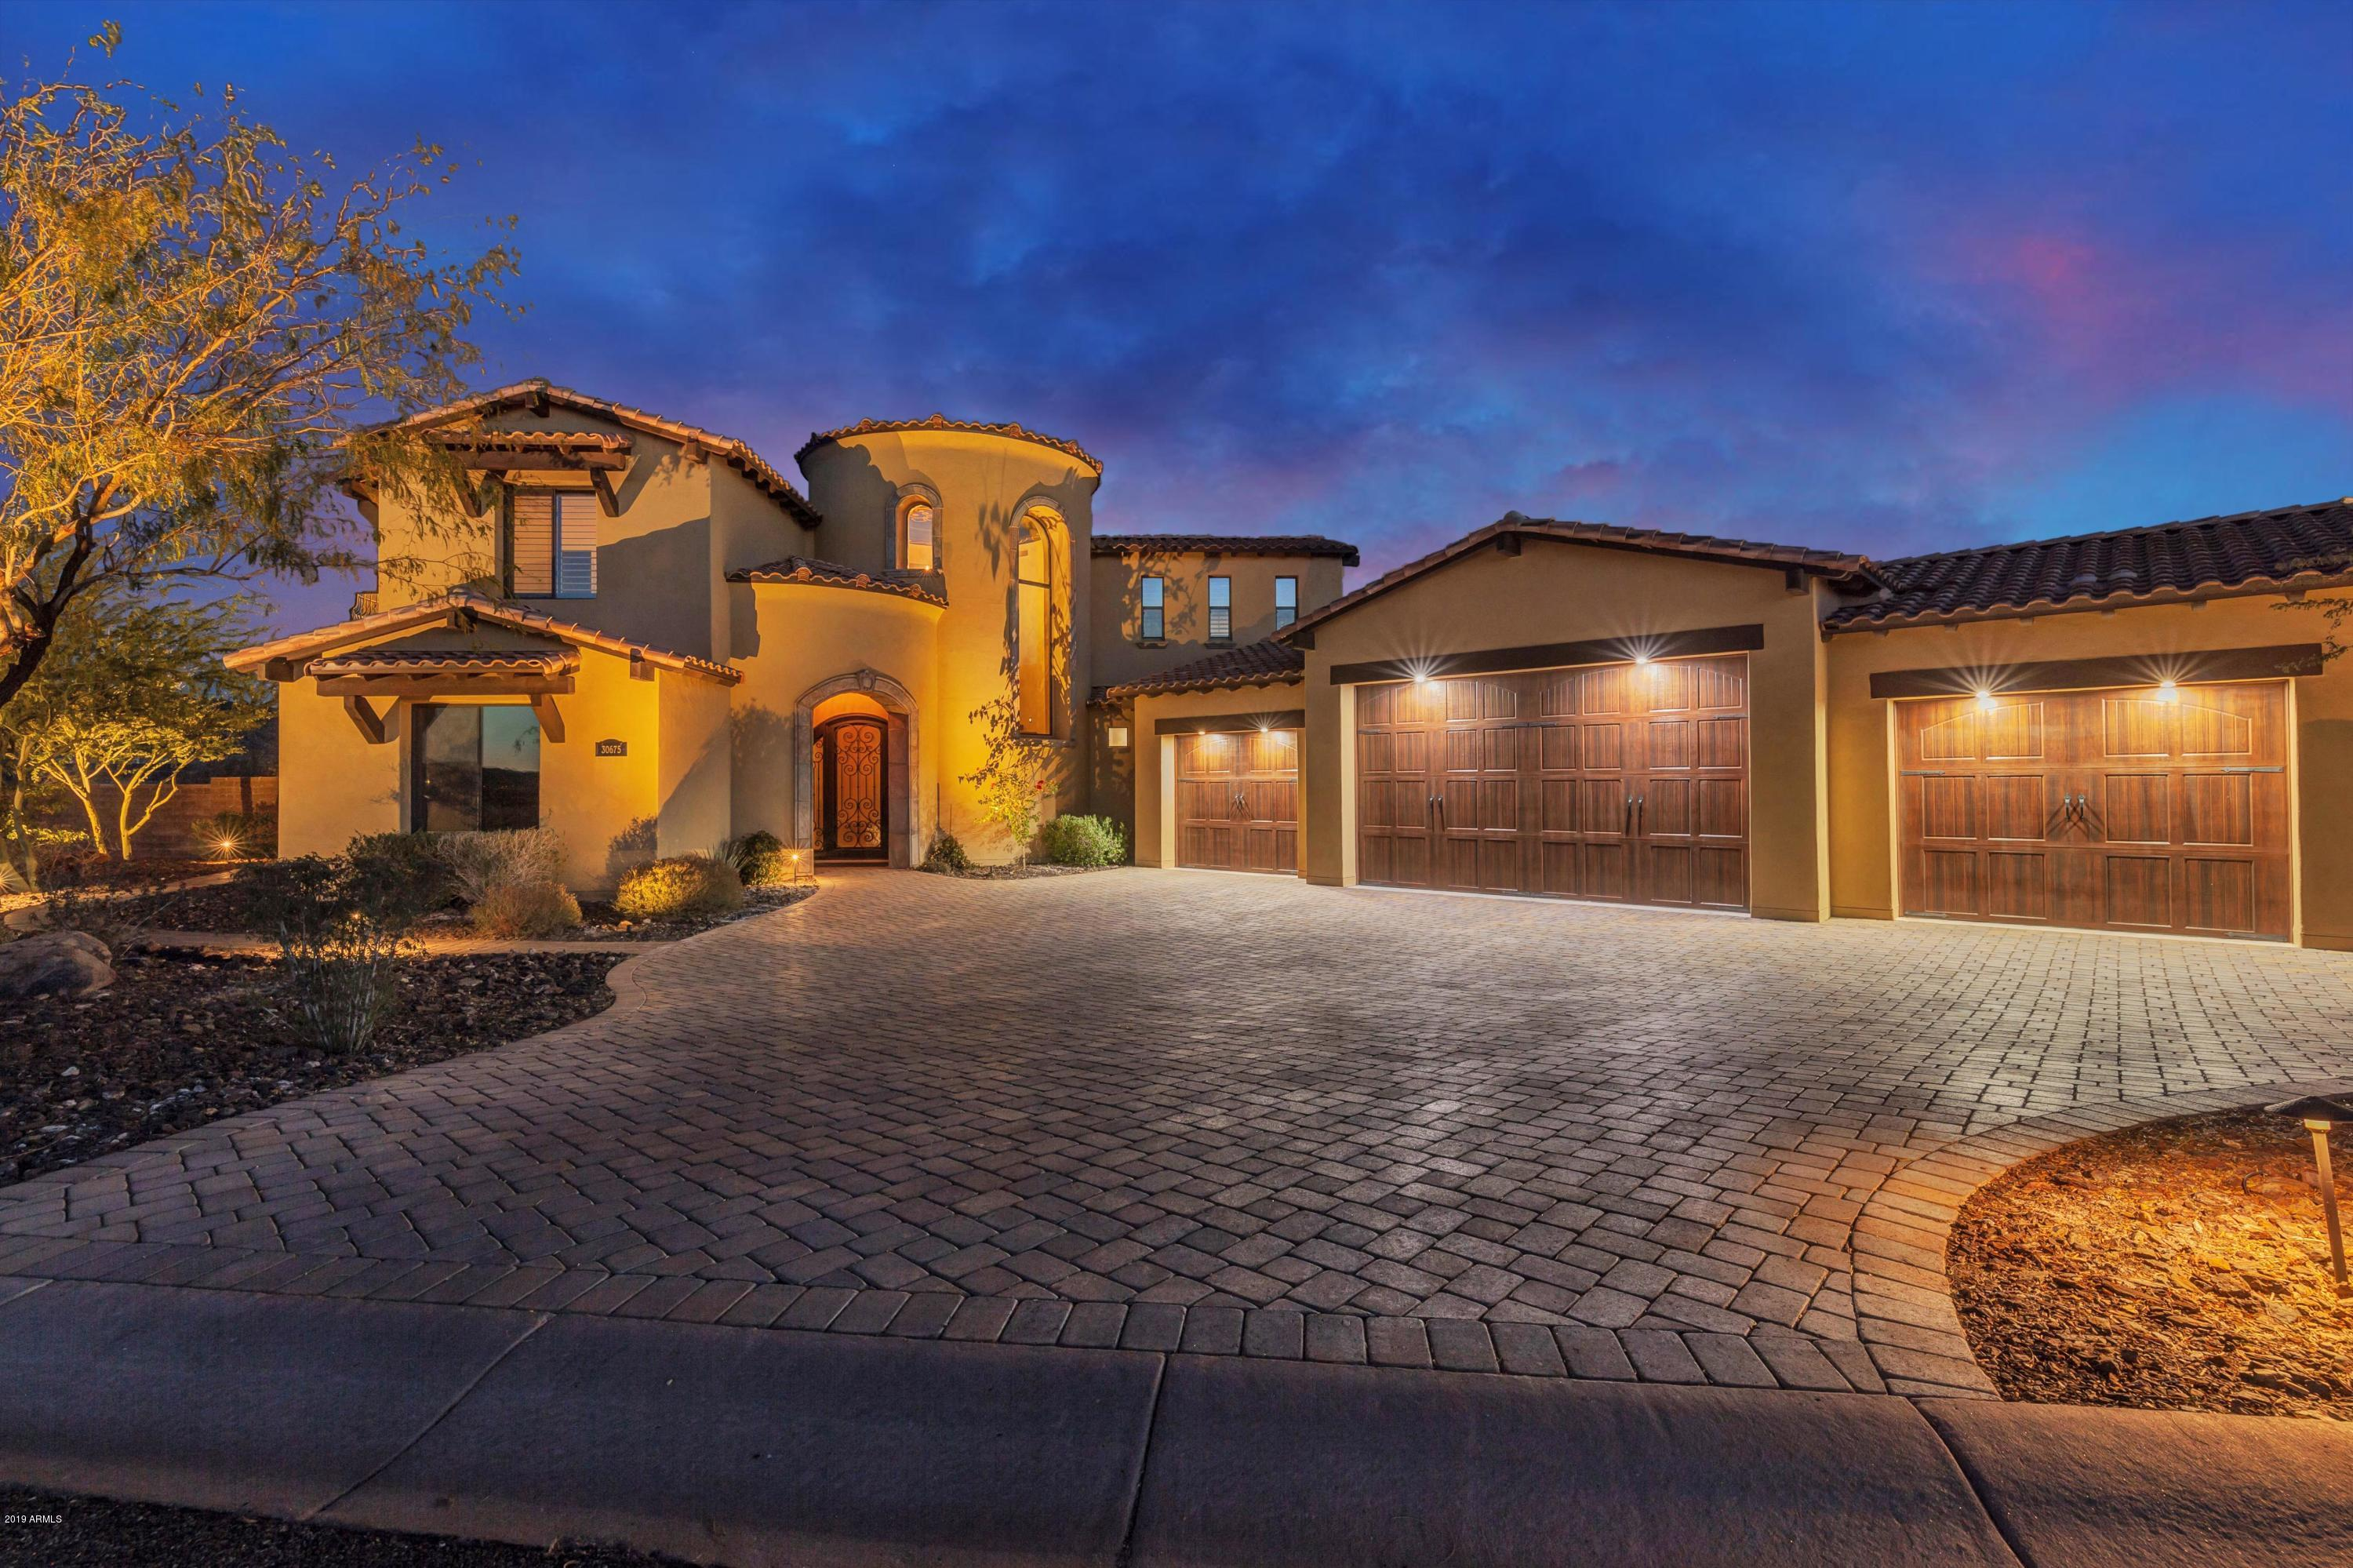 30675 N 120TH Lane, Peoria, Arizona